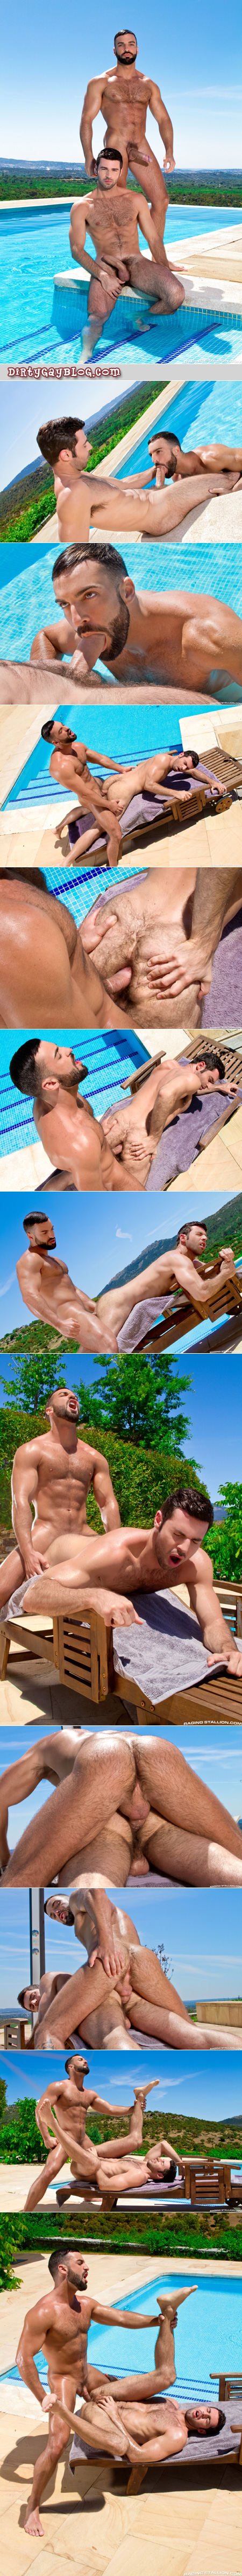 Hairy Arab muscle man  fucking a furry Italian guy's ass by the pool.